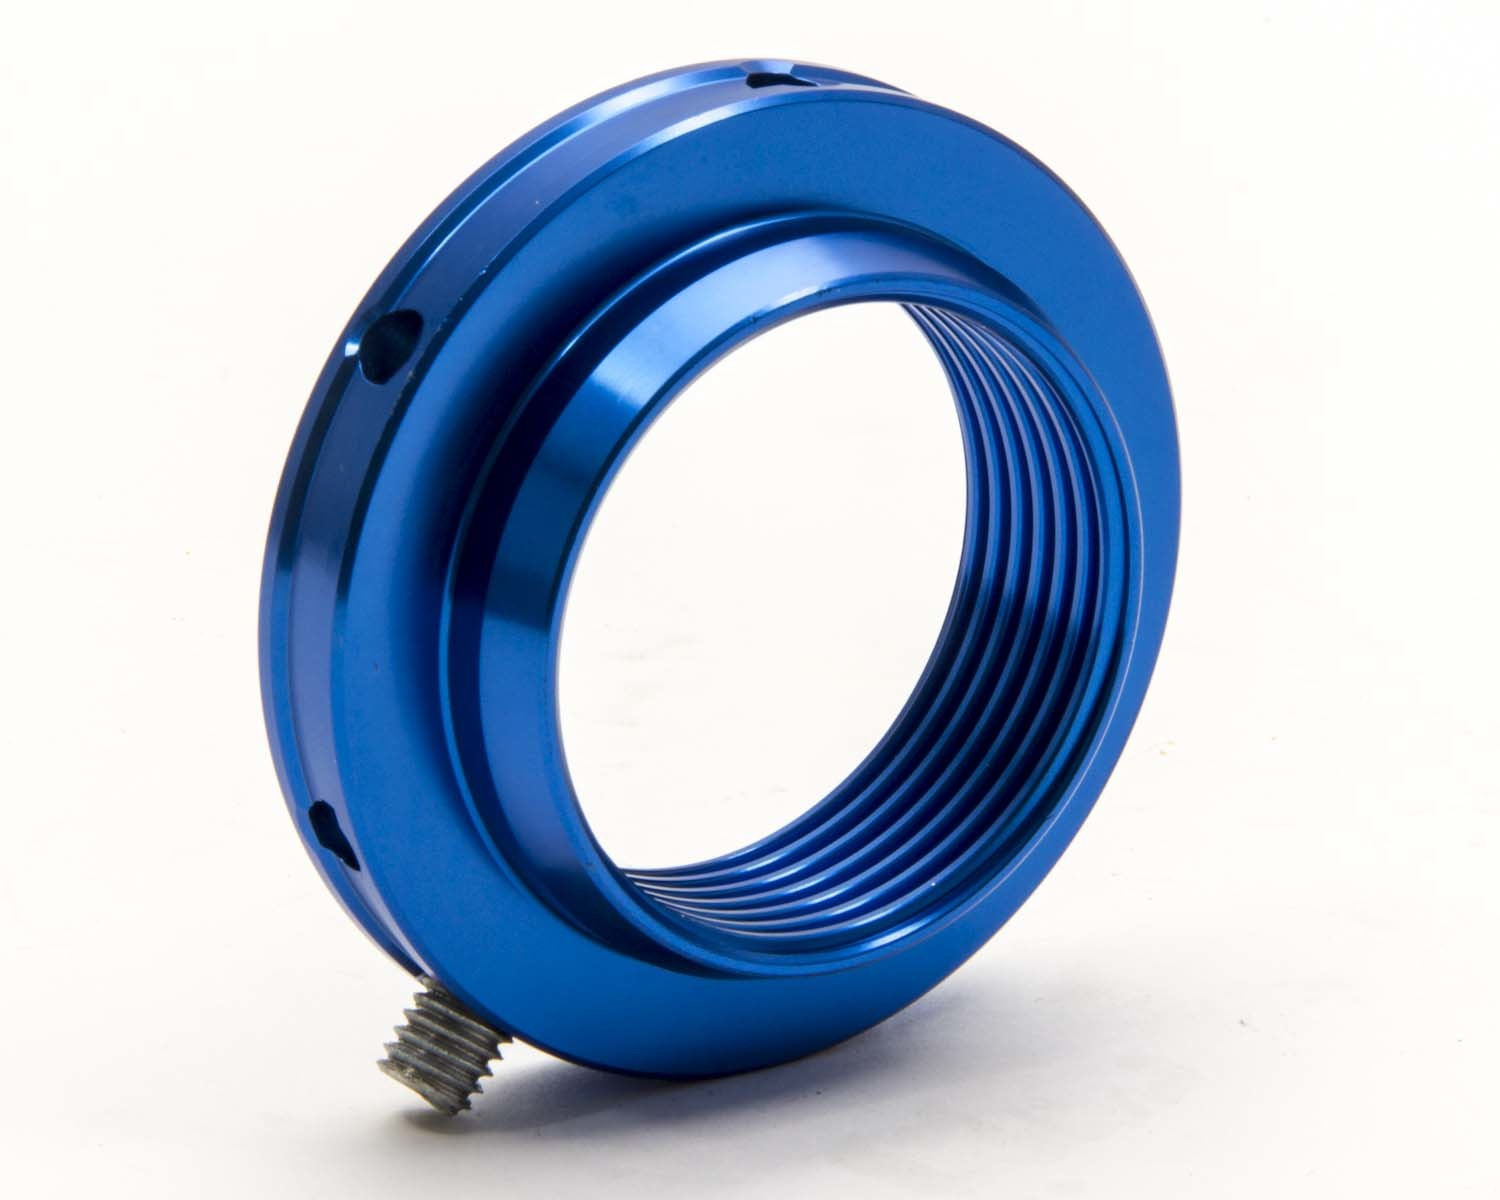 AFCO Racing Products 20131A Coil-Over Adjuster Nut, Aluminum, Blue Anodize, AFCO Big Body Coil-Over Kit, Each